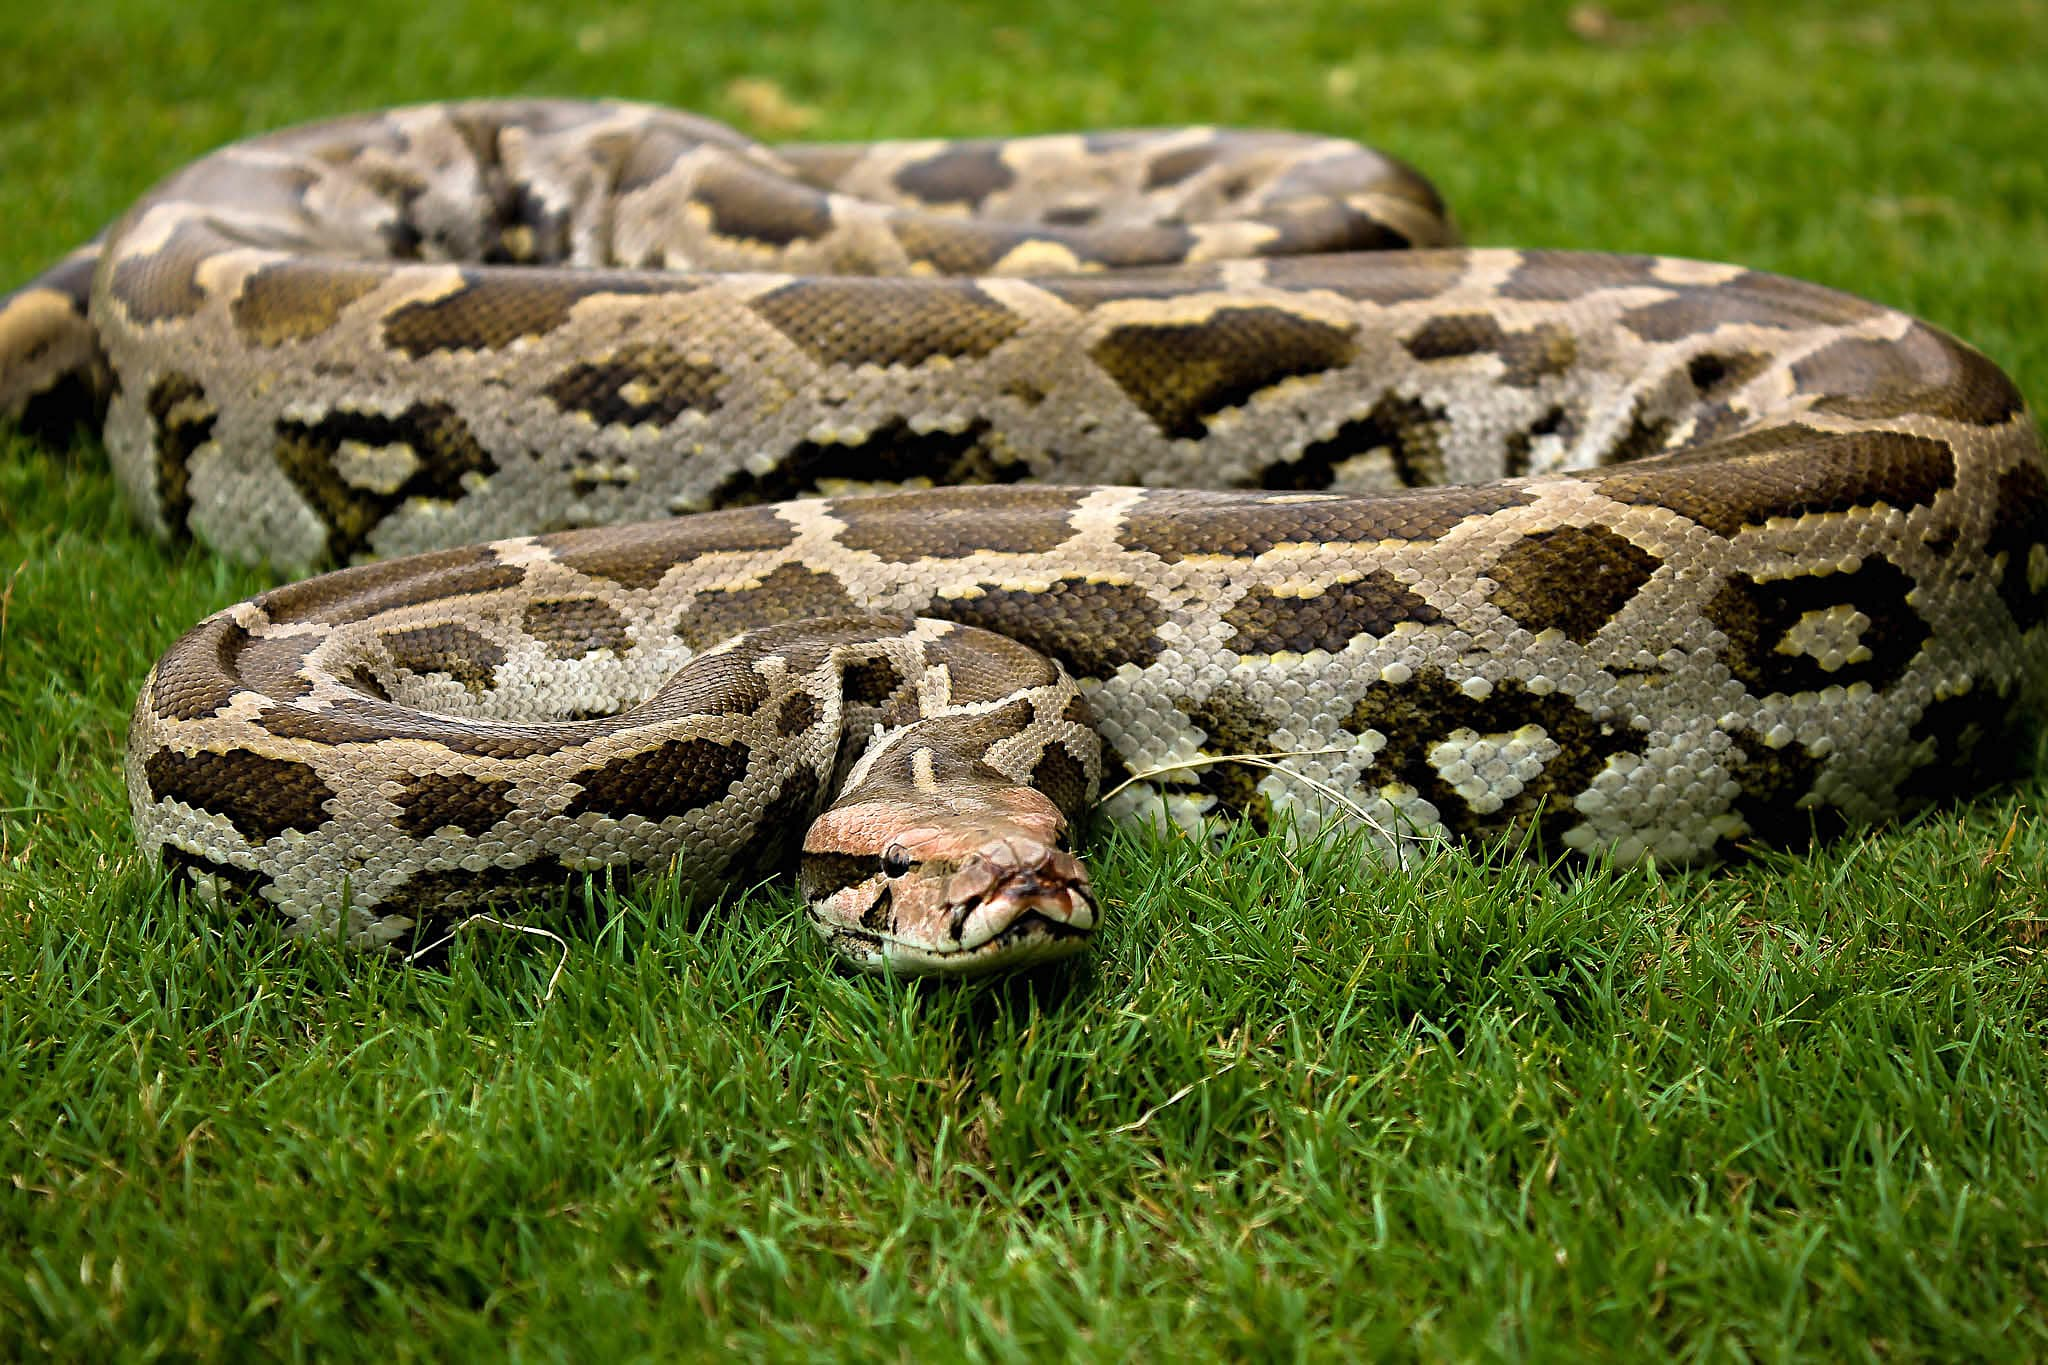 The Indian rock python has poor eyesight and uses its heat-sensing pits to detect warm-bodied prey in its surroundings. Photo: Girish Choure  Cover photo: Indian rock pythons occupy various habitats such as rainforests, river valleys, woodlands, scrublands, marshes, and rocky outcrops. They usually prefer spots with vegetation so they can hide. Cover photo: Nirmal Kulkarni